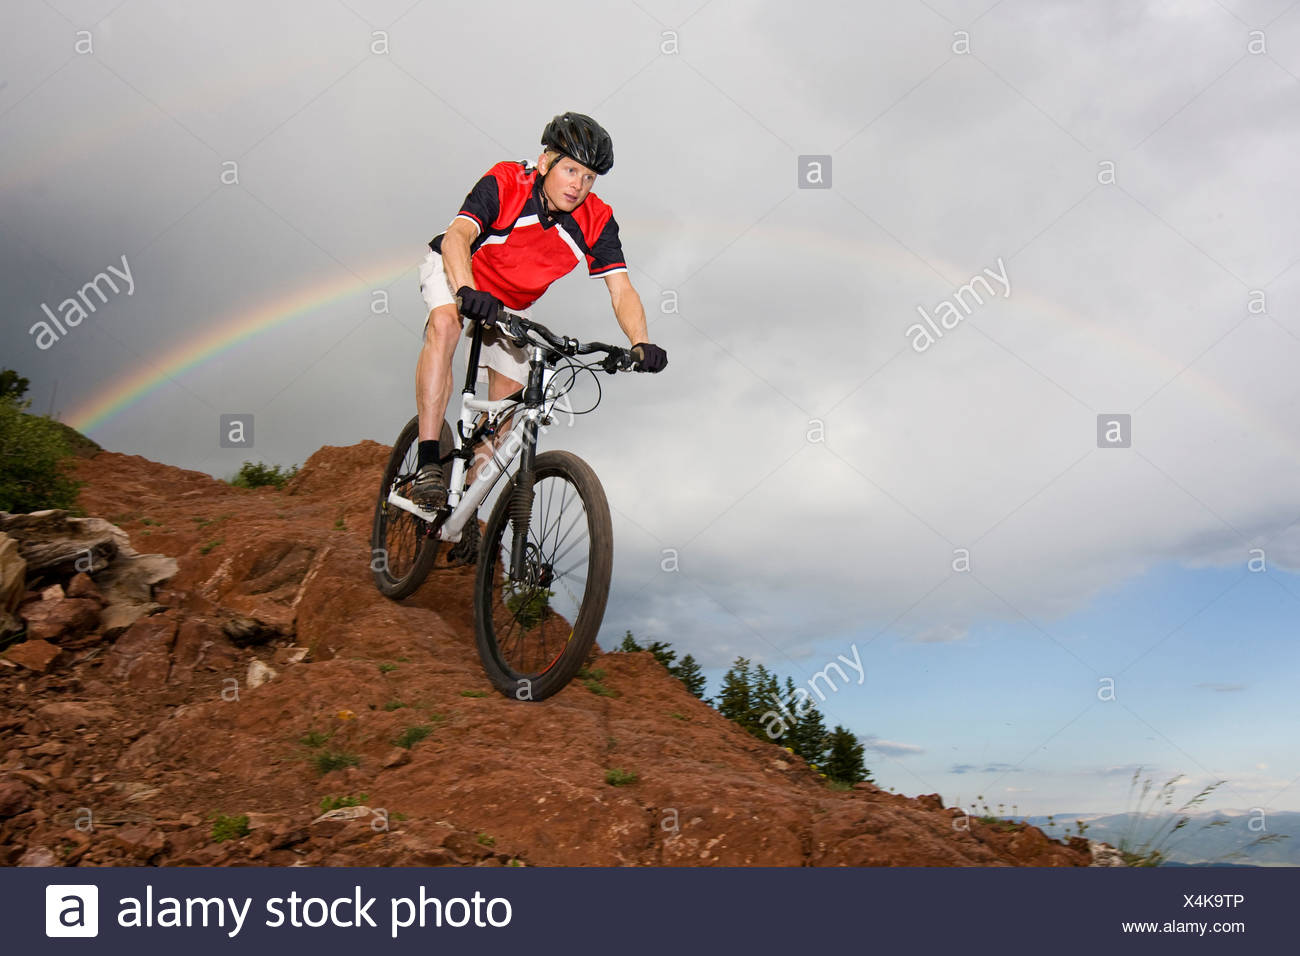 A man riding his bike under a rainbow on a rainy day in Utah. - Stock Image